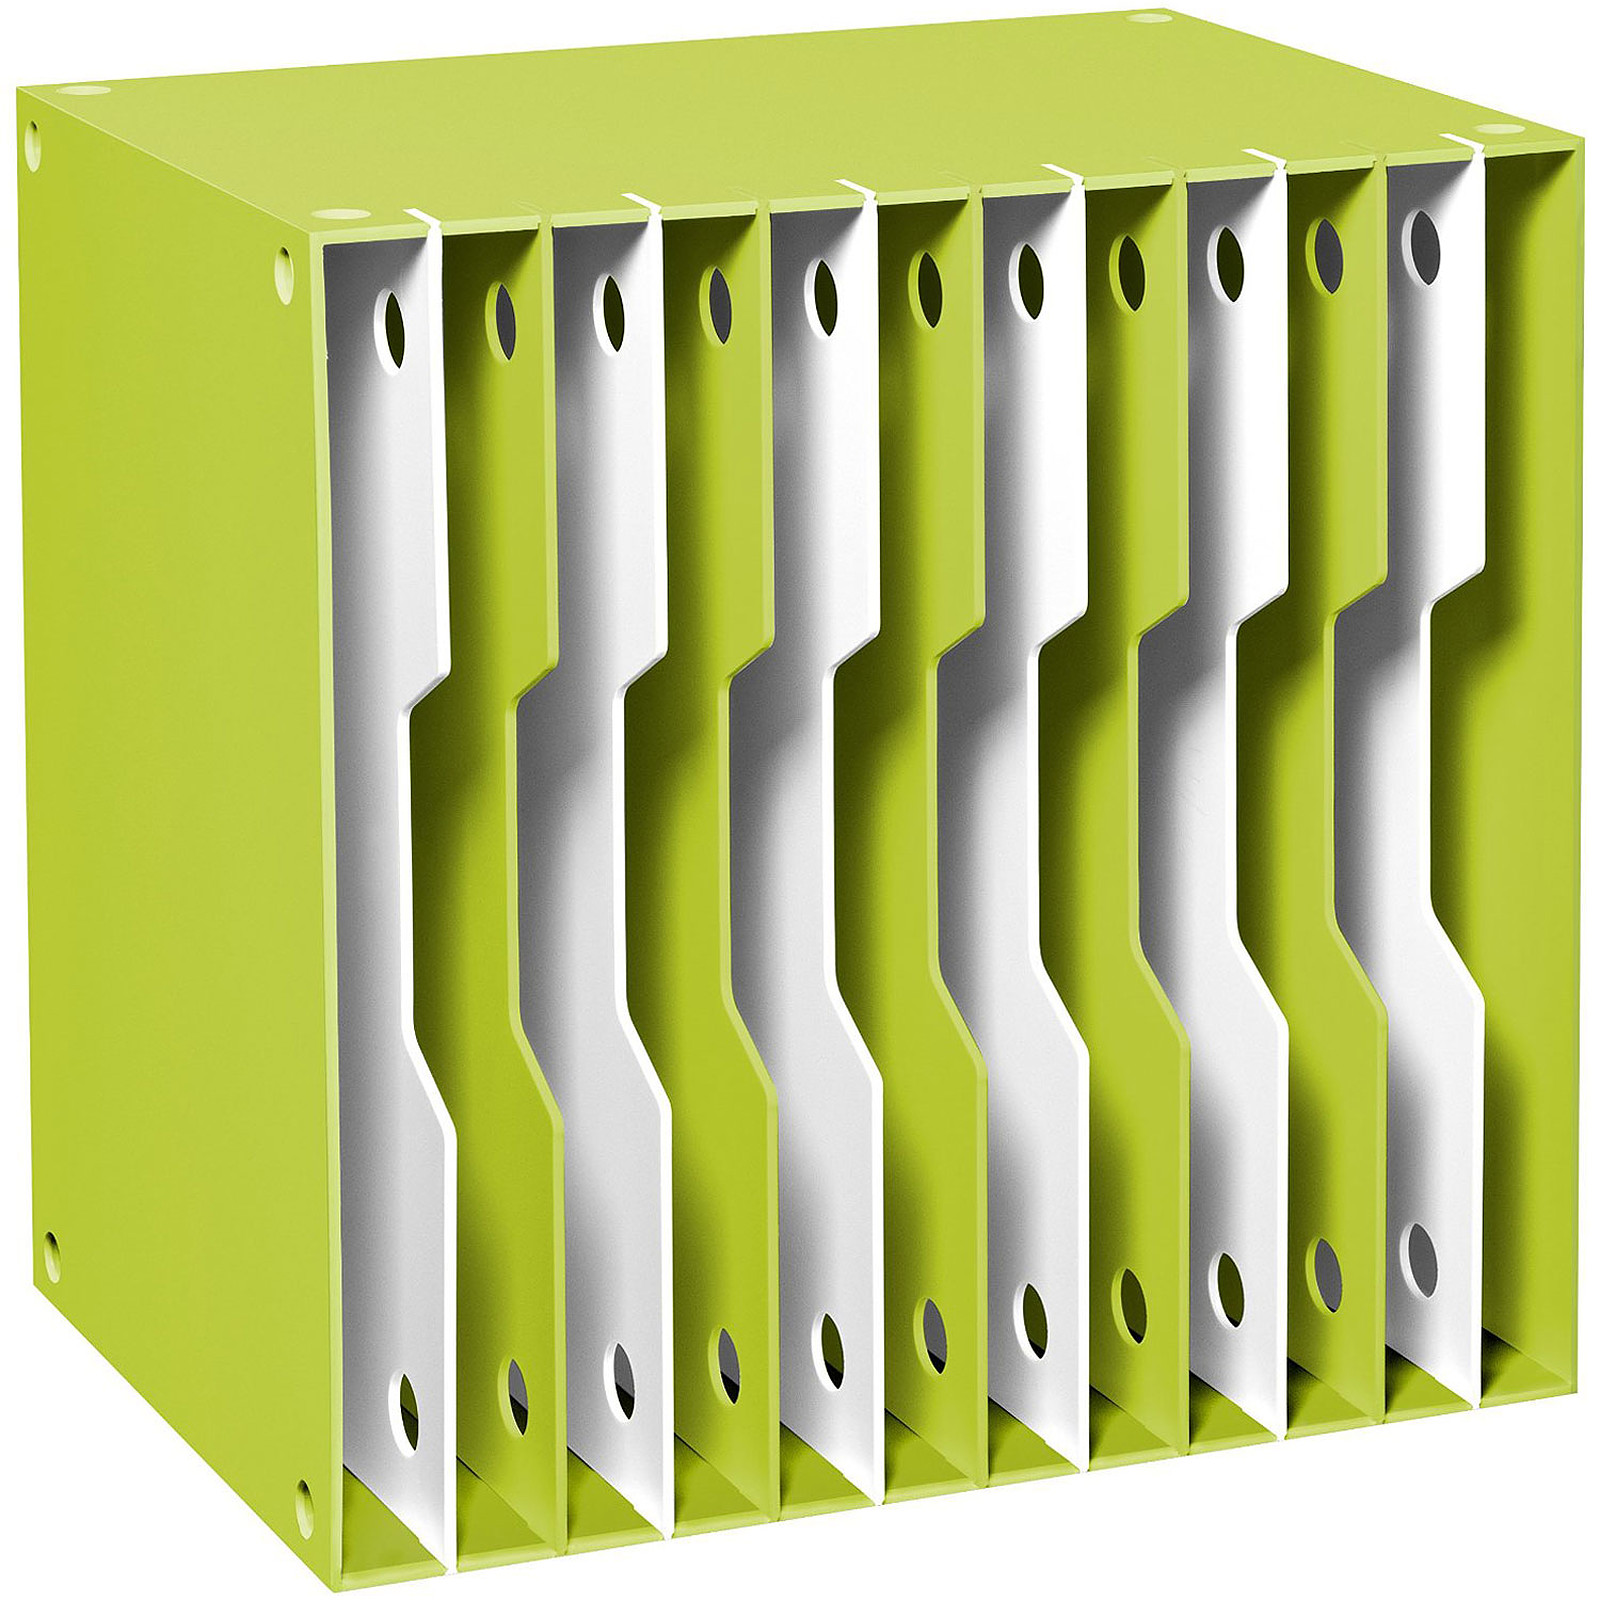 CEP Module CubiCep 12 cases Gloss Anis